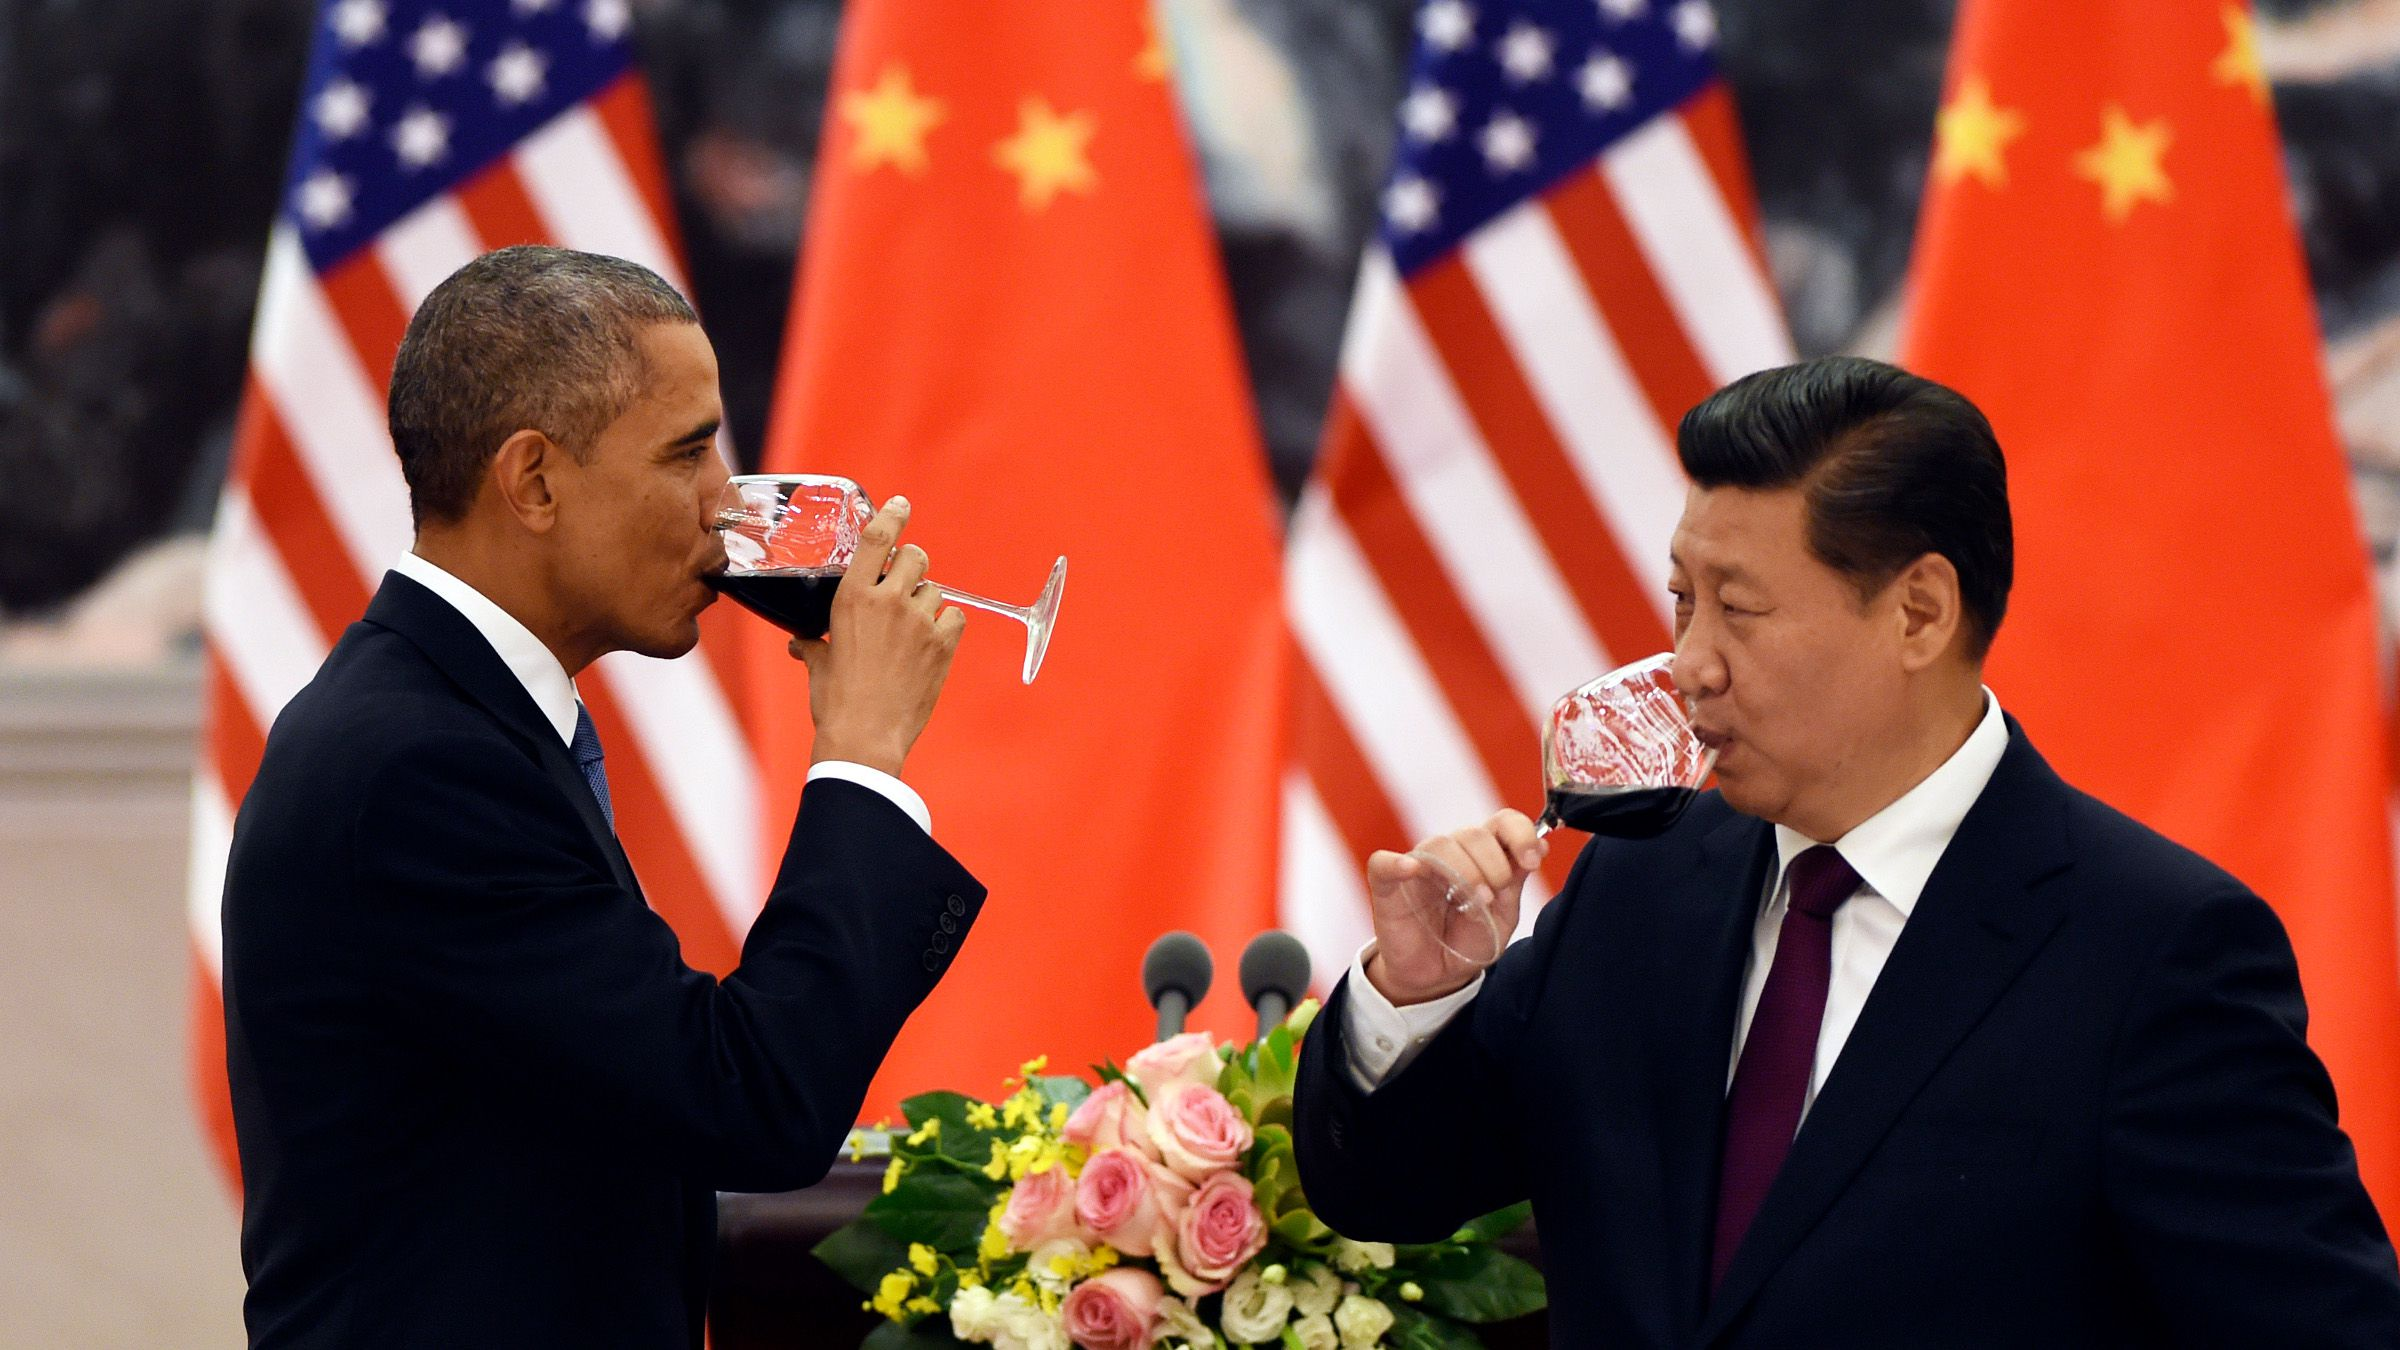 U.S. President Barack Obama (L) and Chinese President Xi Jinping have a drink after a toast at a lunch banquet in the Great Hall of the People in Beijing November 12, 2014. Obama is on a state visit after attending the Asia-Pacific Economic Cooperation summit.